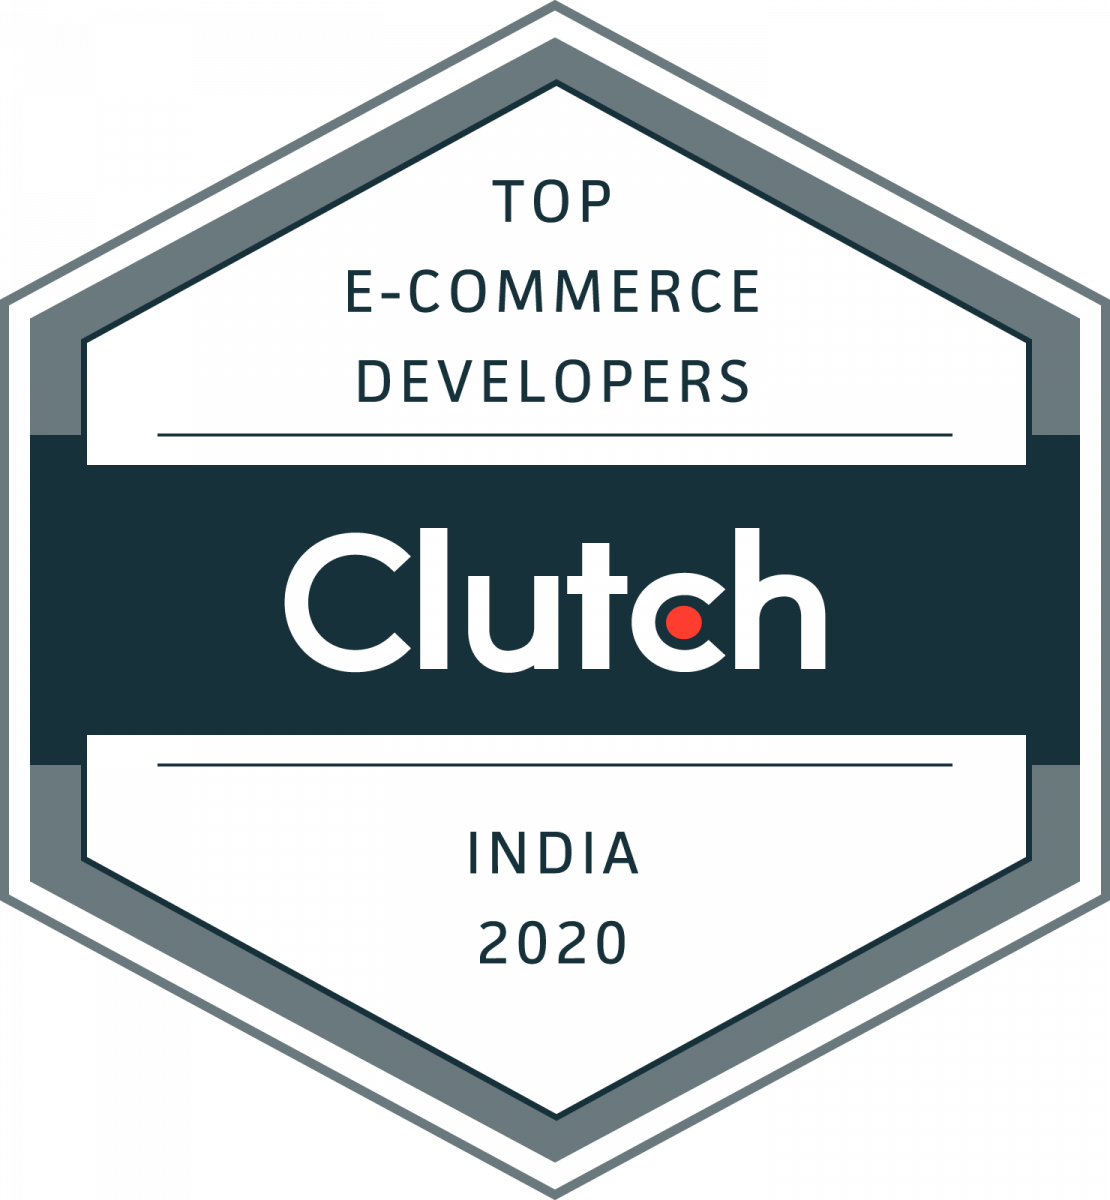 Metricoid Named as a Top E-Commerce Developer in India